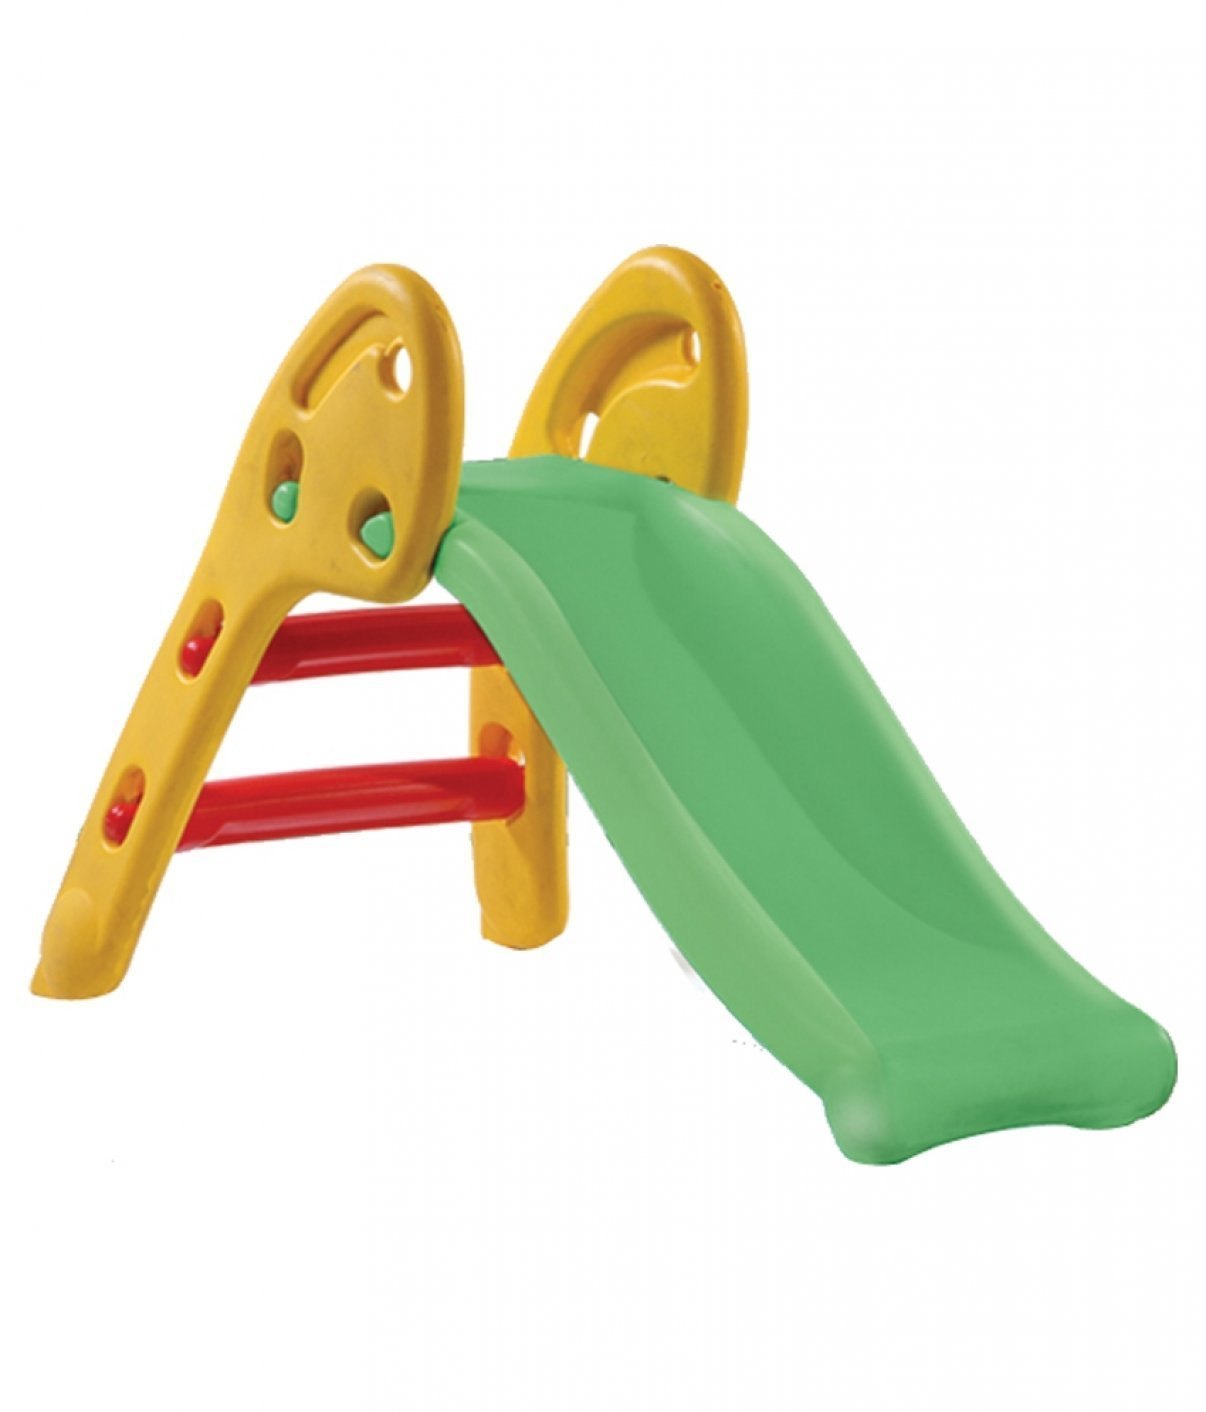 Playgro My First Slide-211 For Kids (Colour May Vary)